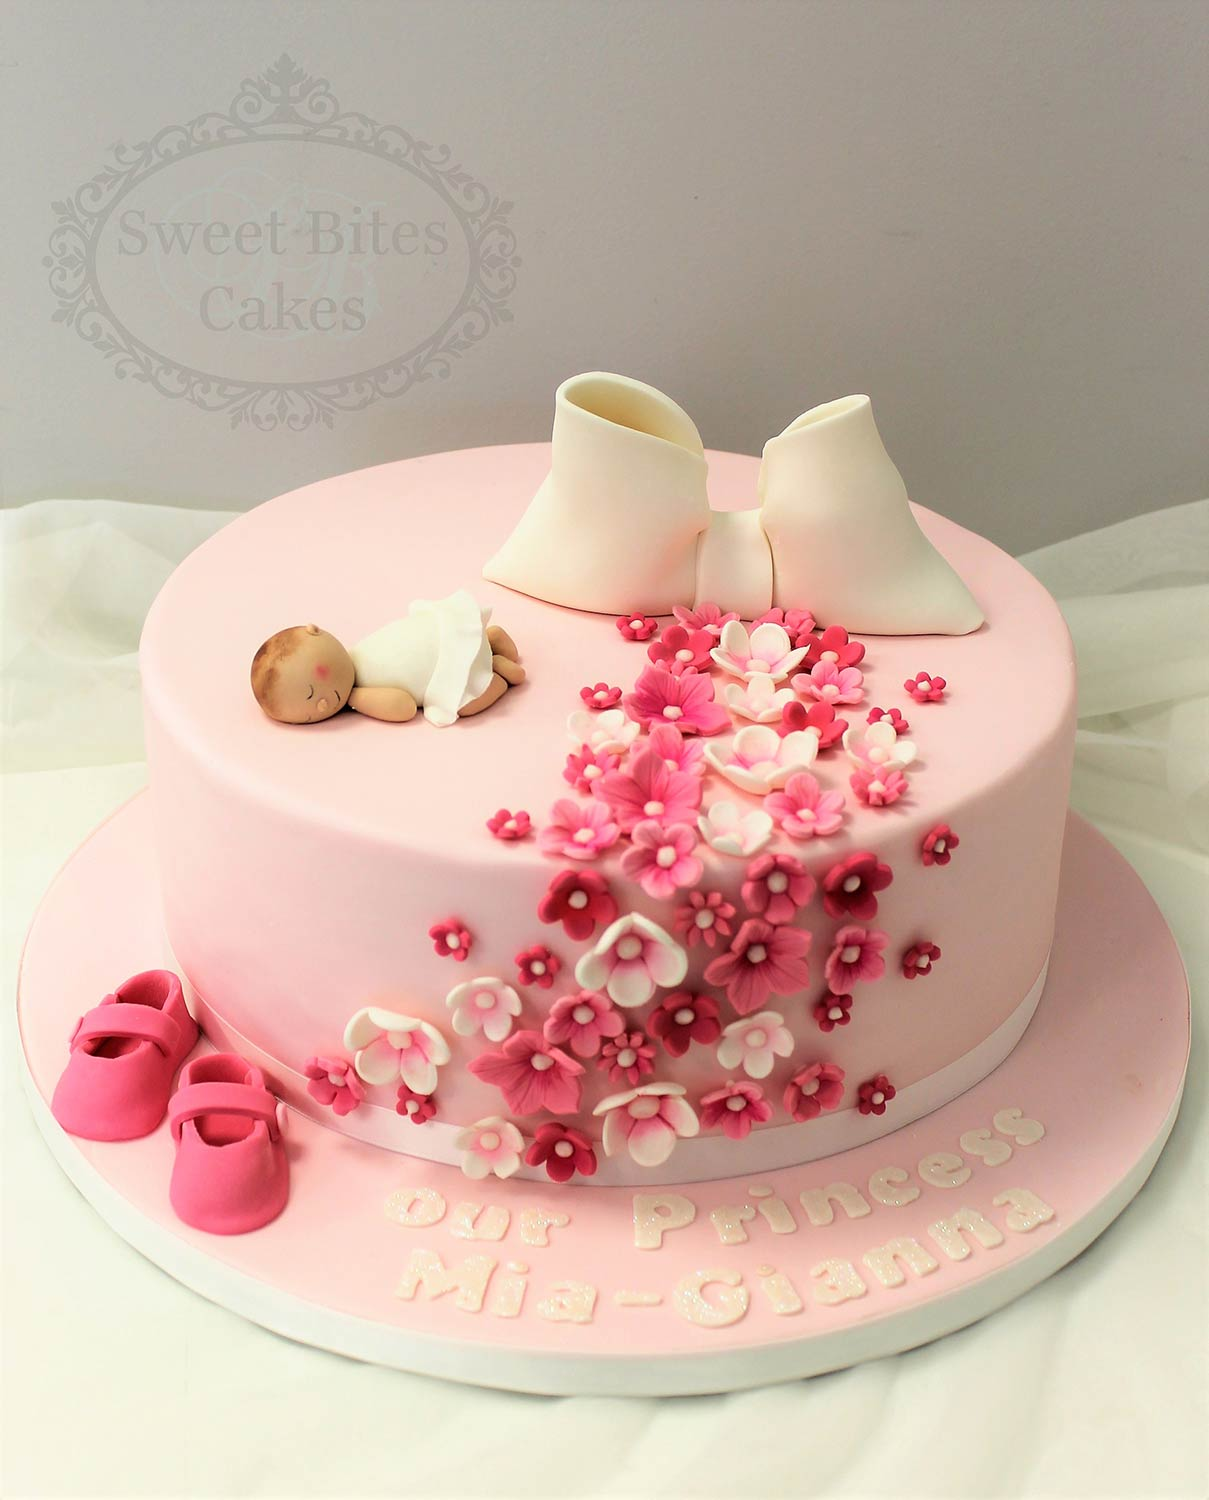 Photo cakes for baby girl